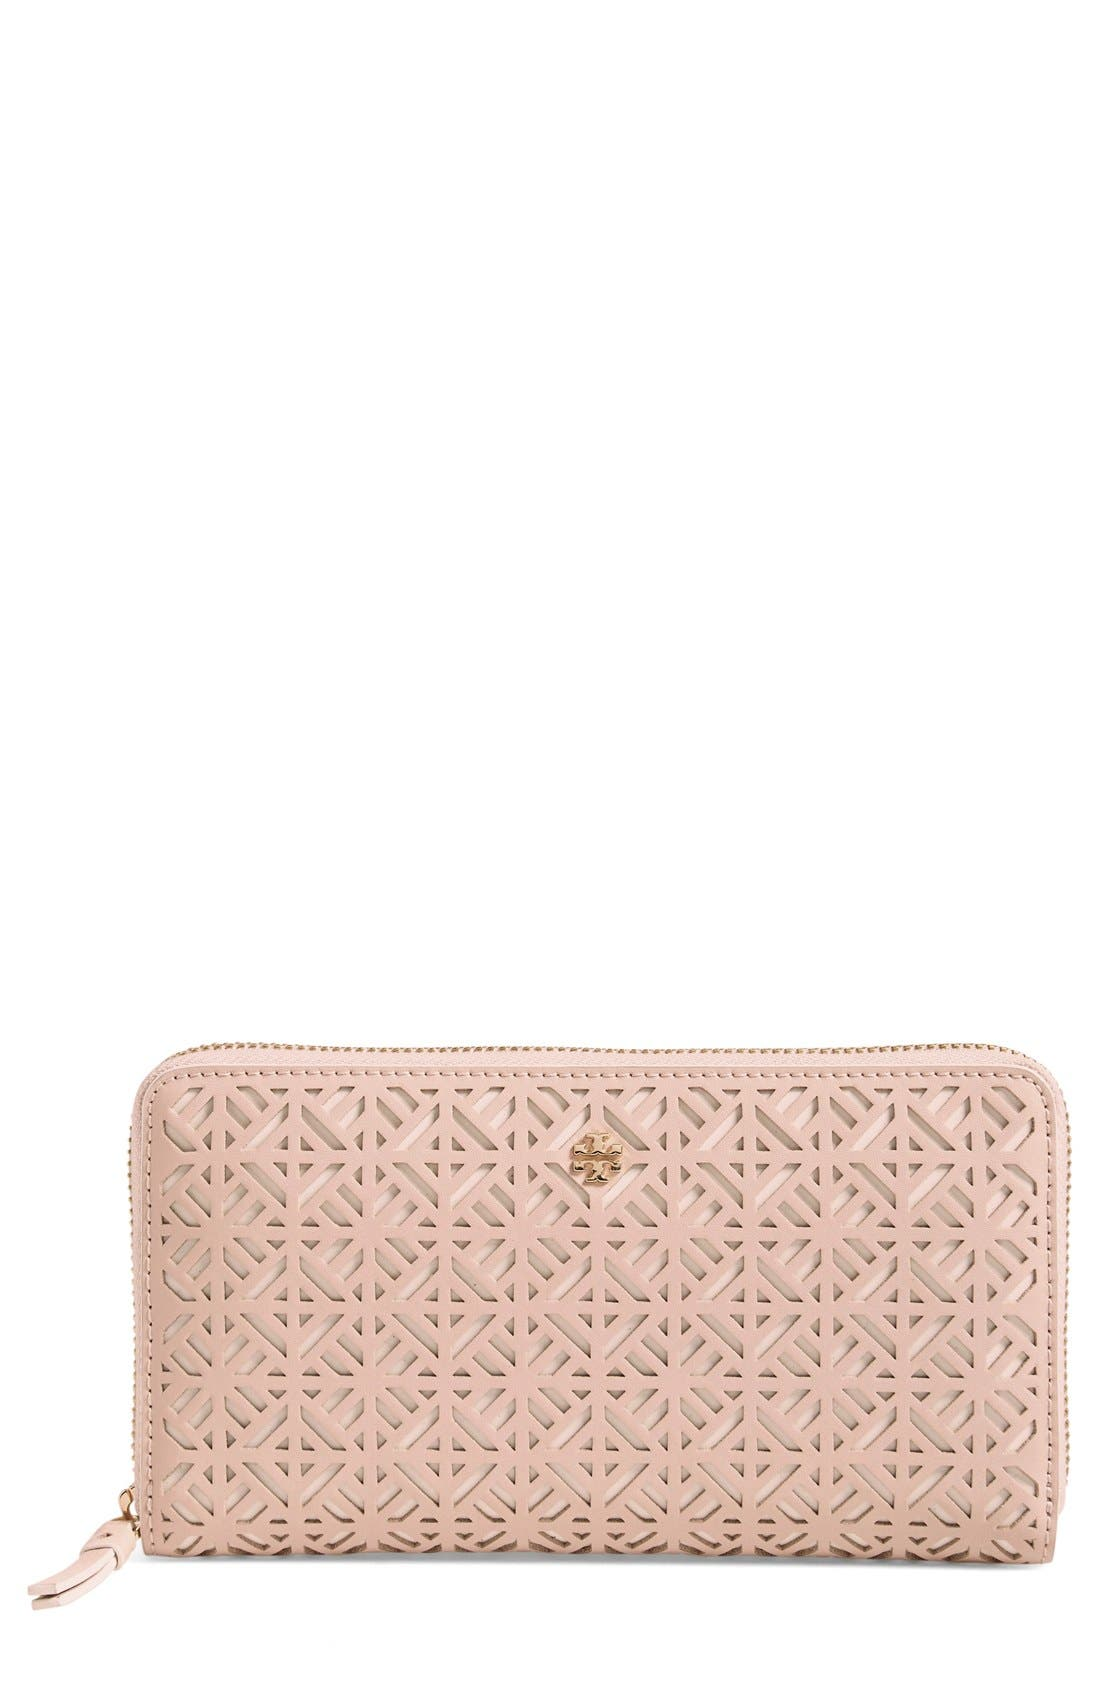 Alternate Image 1 Selected - Tory Burch 'Fret-T' Zip Continental Wallet